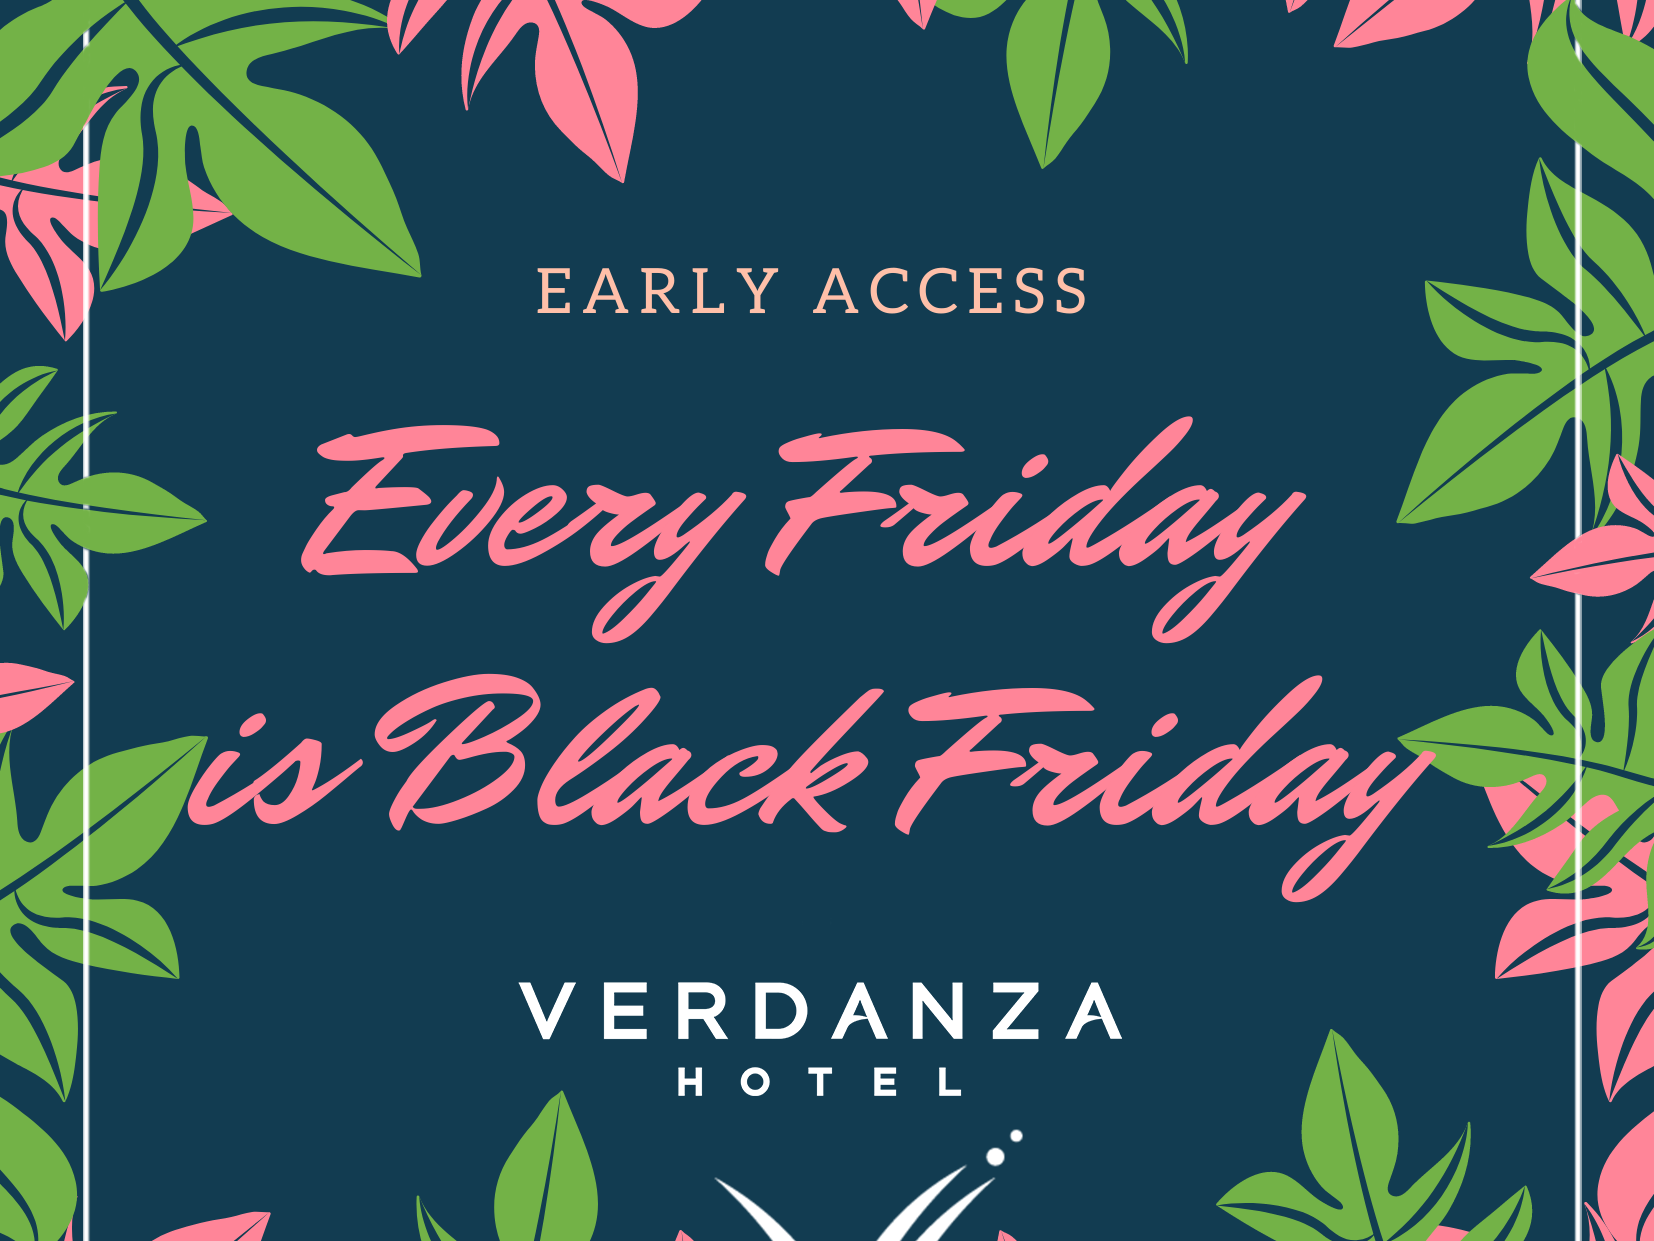 black friday verdanza